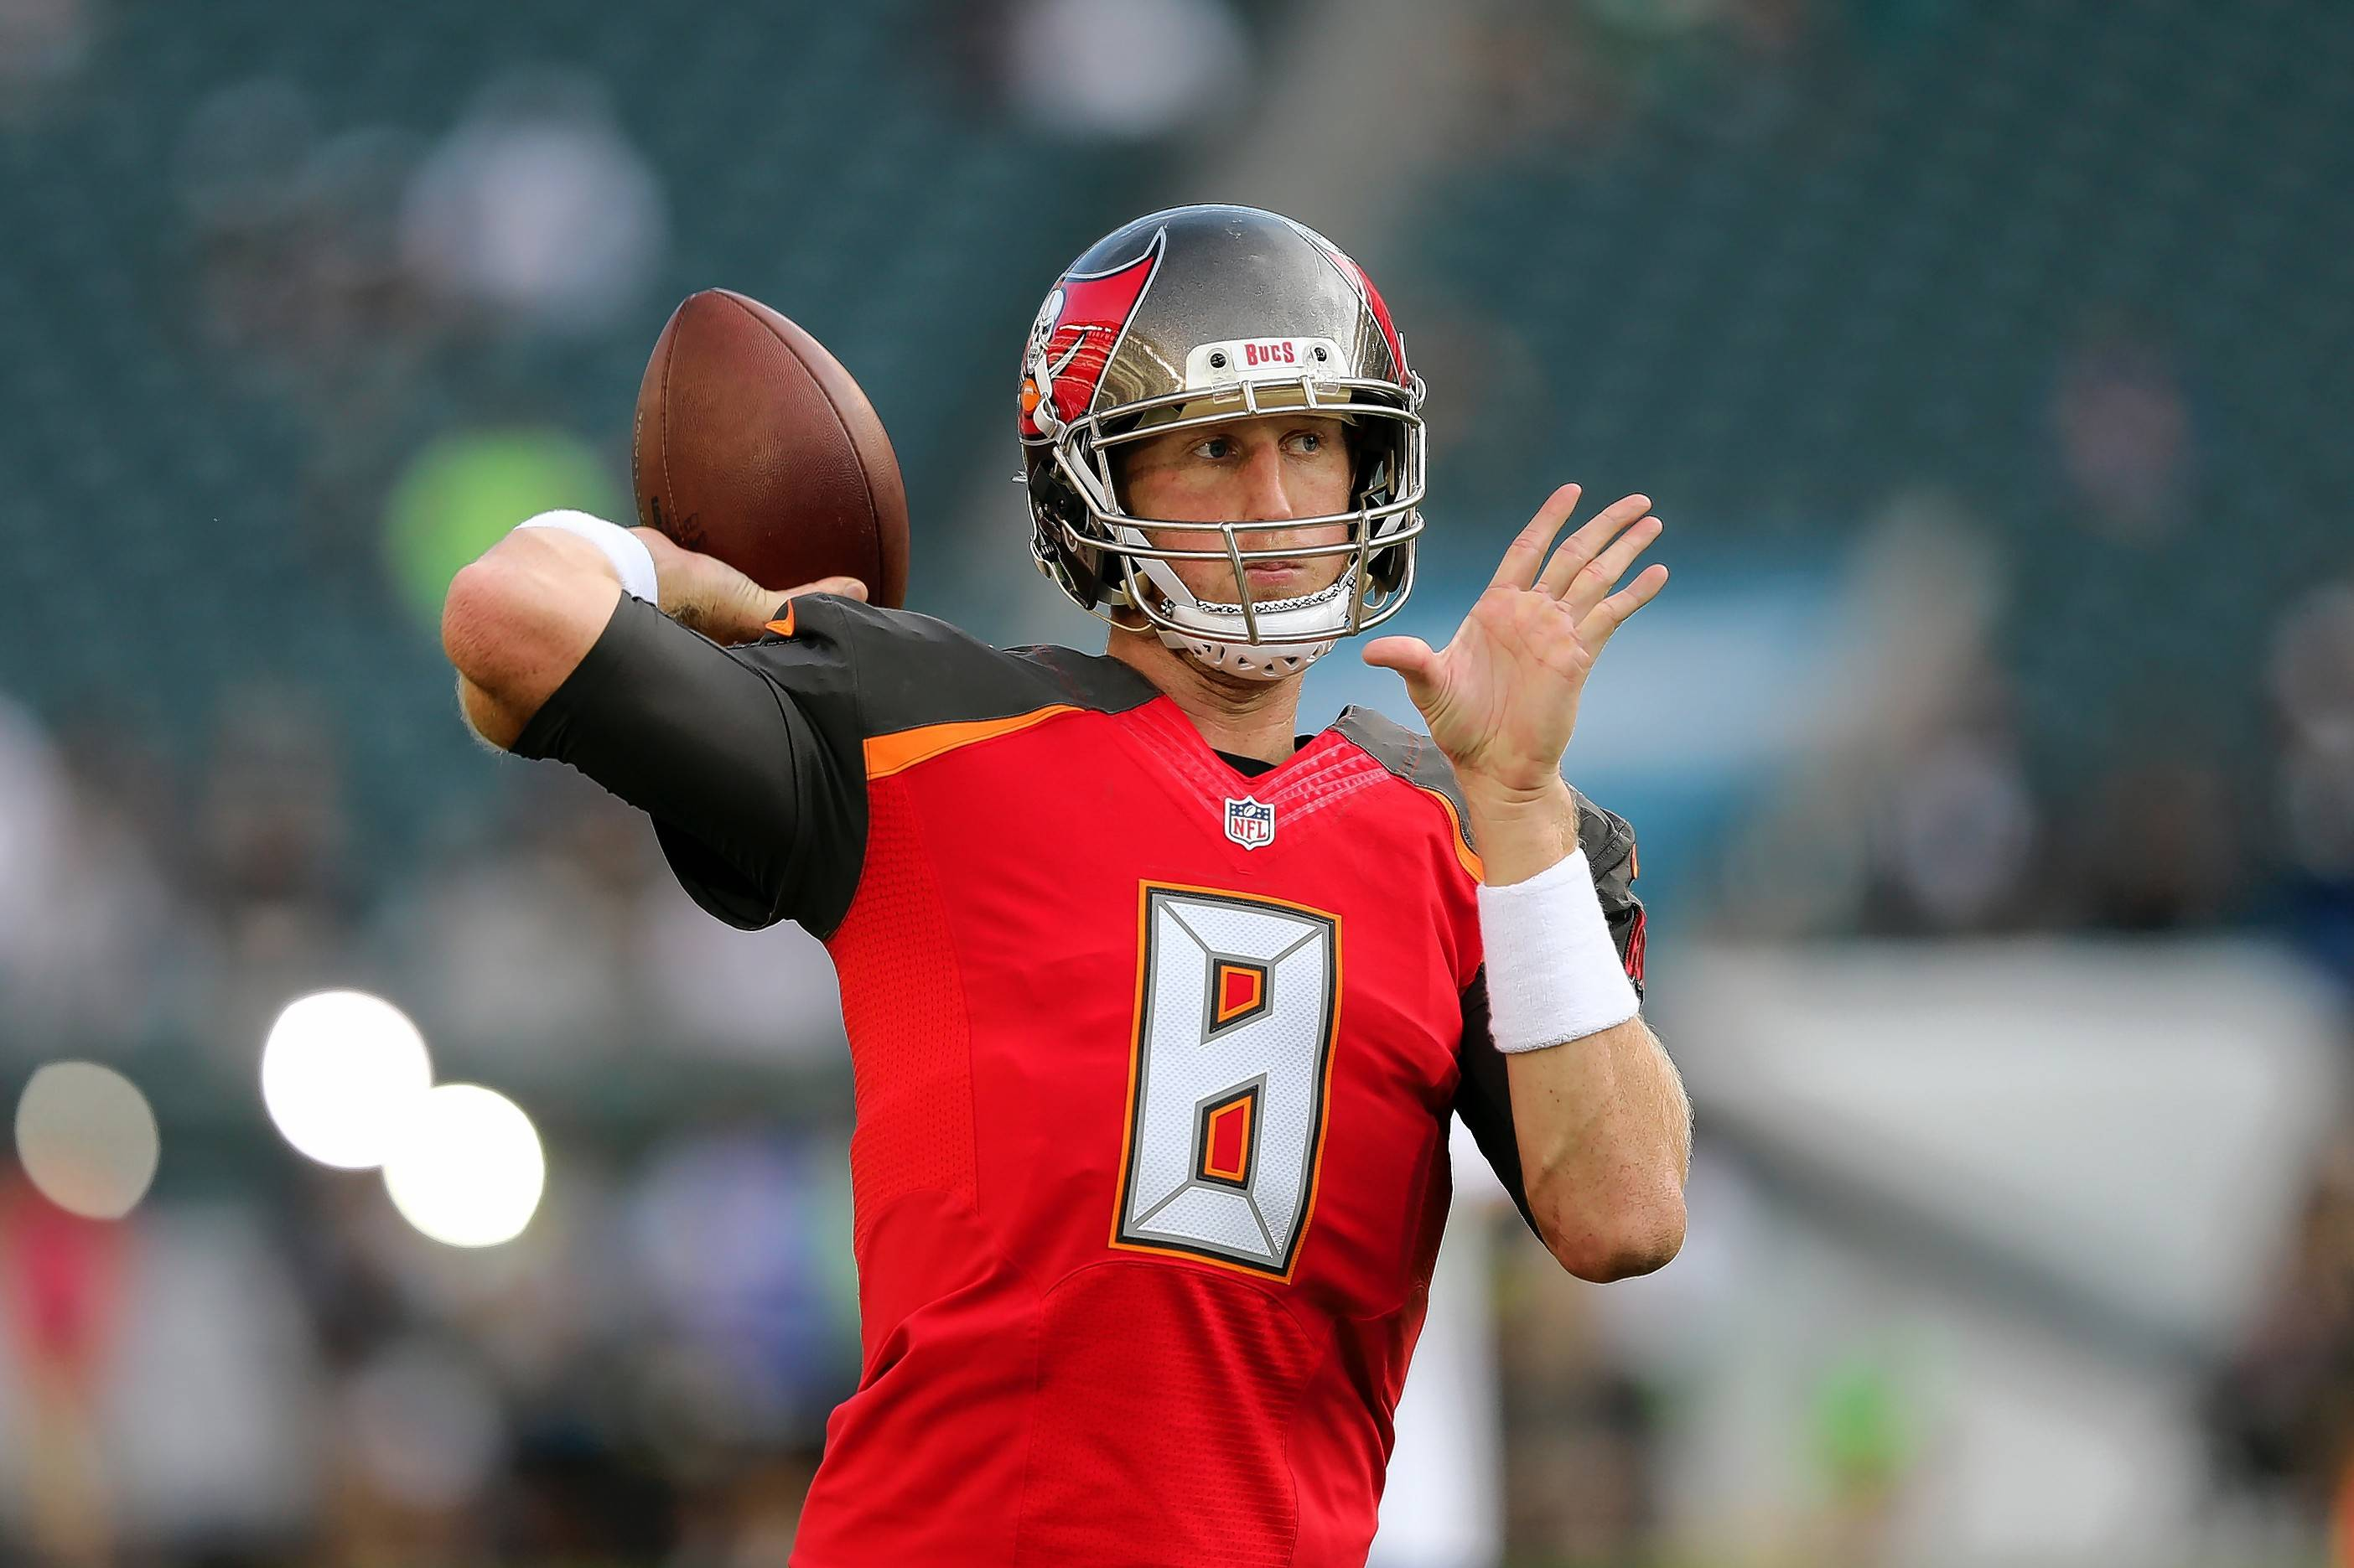 Former Tampa Bay Buccaneers quarterback Mike Glennon is expected to sign a three-year deal with the Chicago Bears.